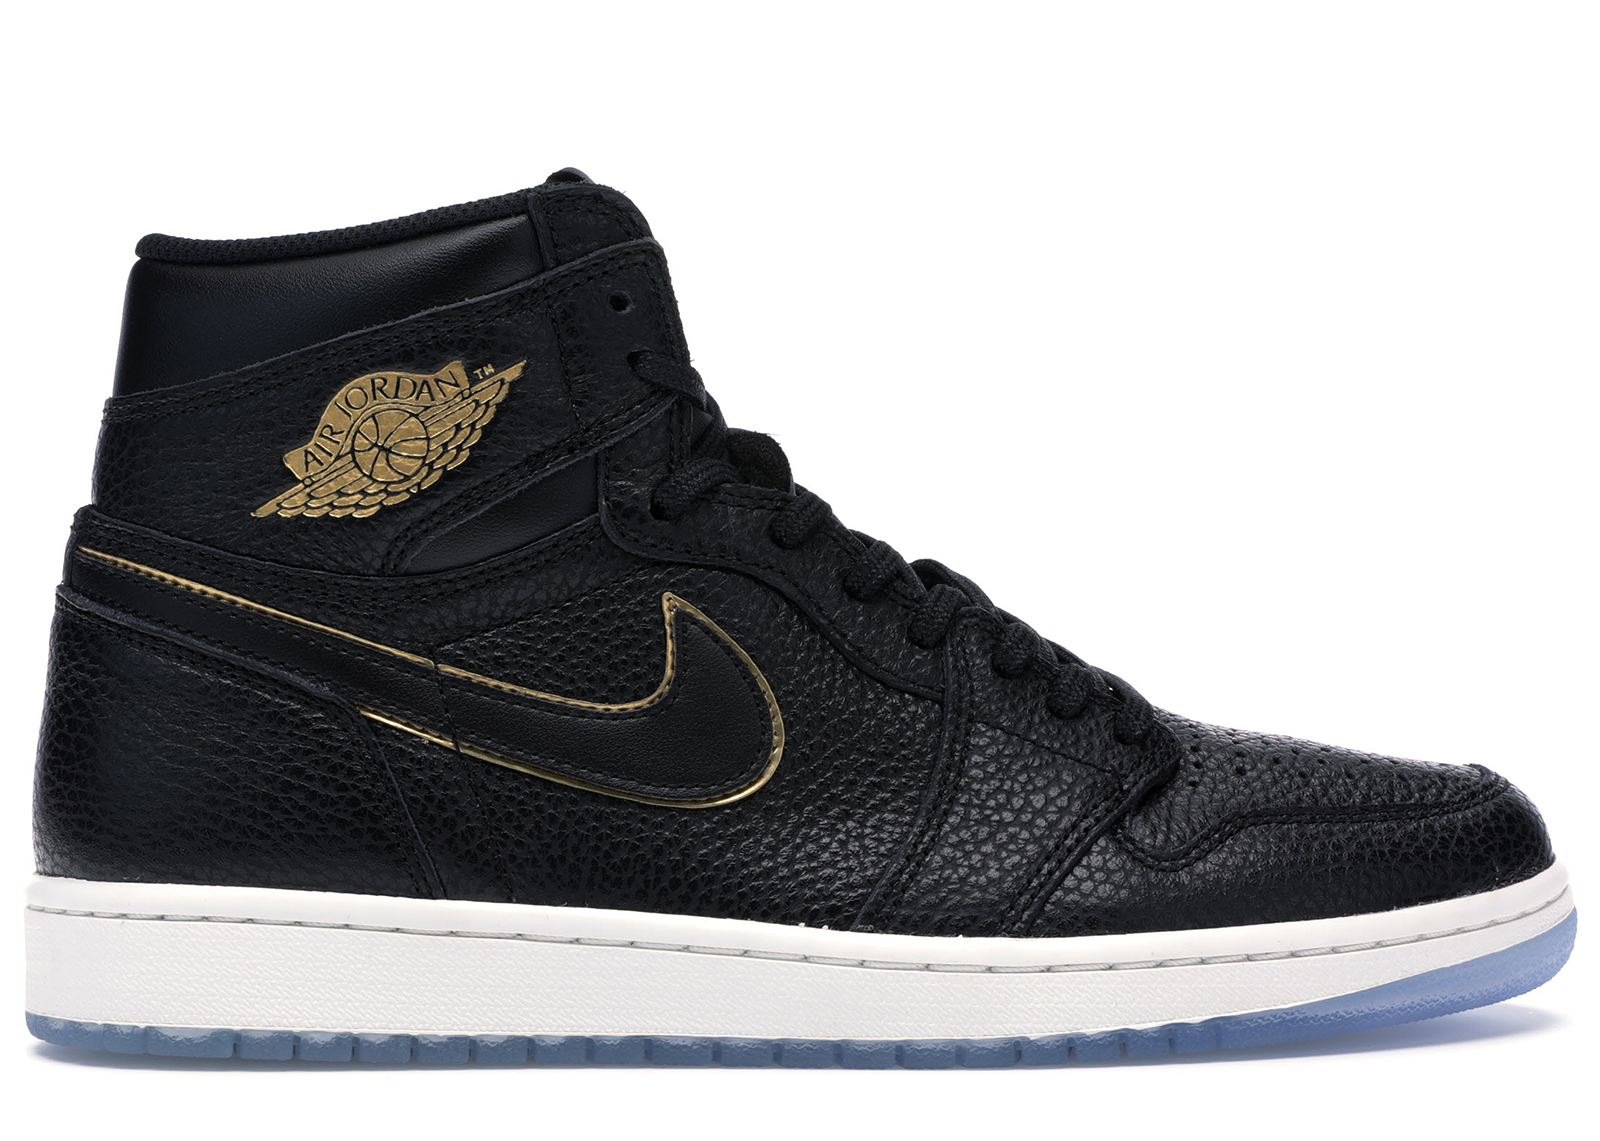 jordan 1 retro high og black and gold